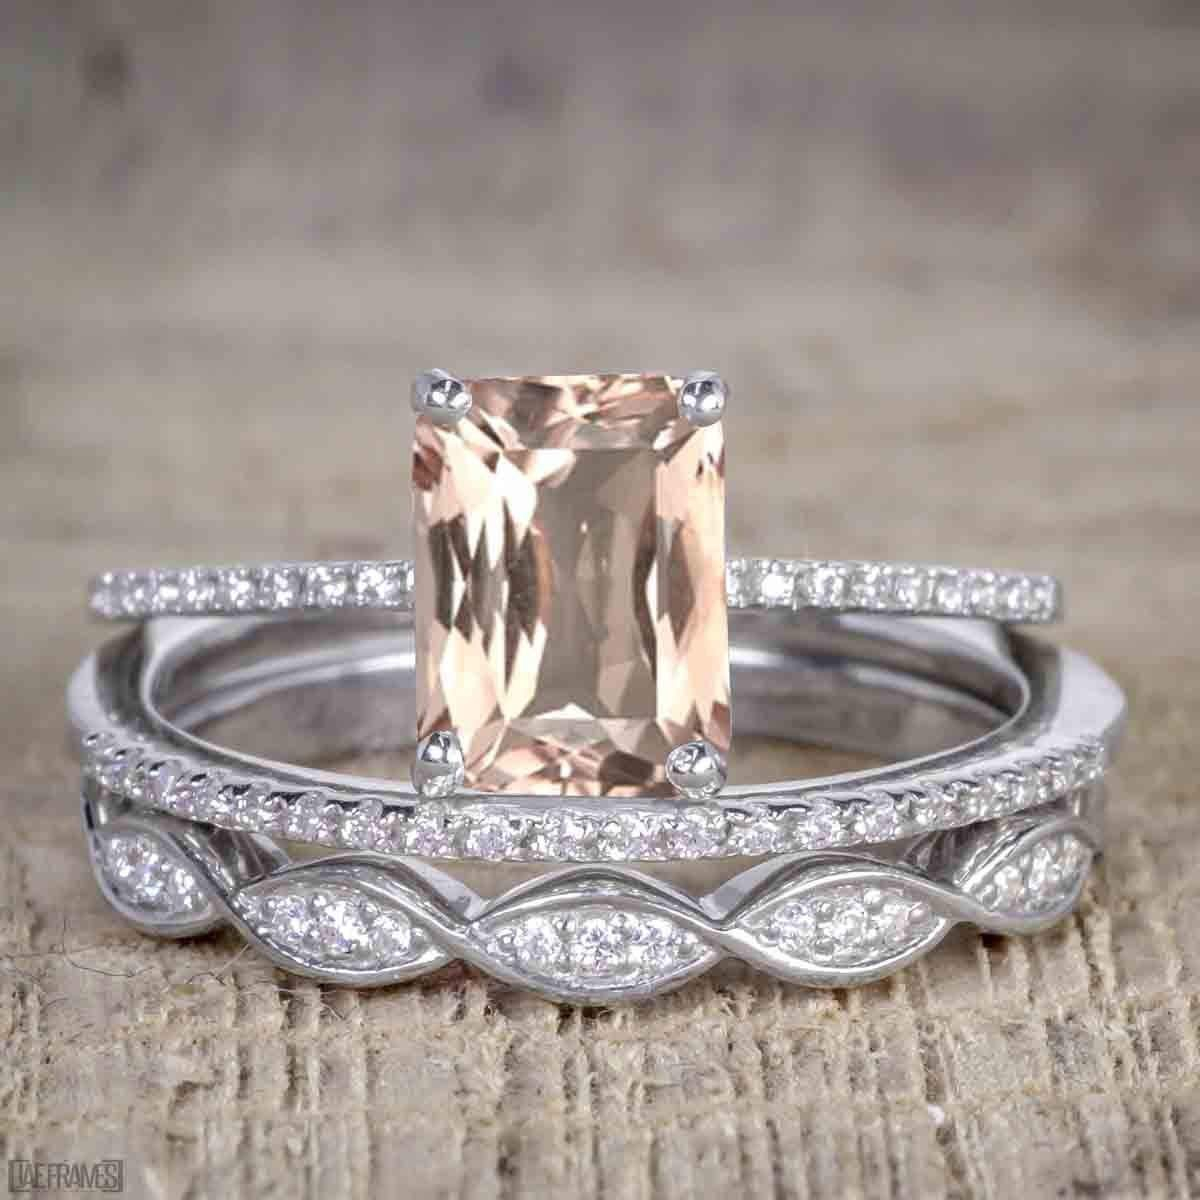 Cheap Channel Set Wedding Bands, Find Channel Set Wedding Intended For Most Current Diamond Channel Set Anniversary Bands In White Gold (View 18 of 24)